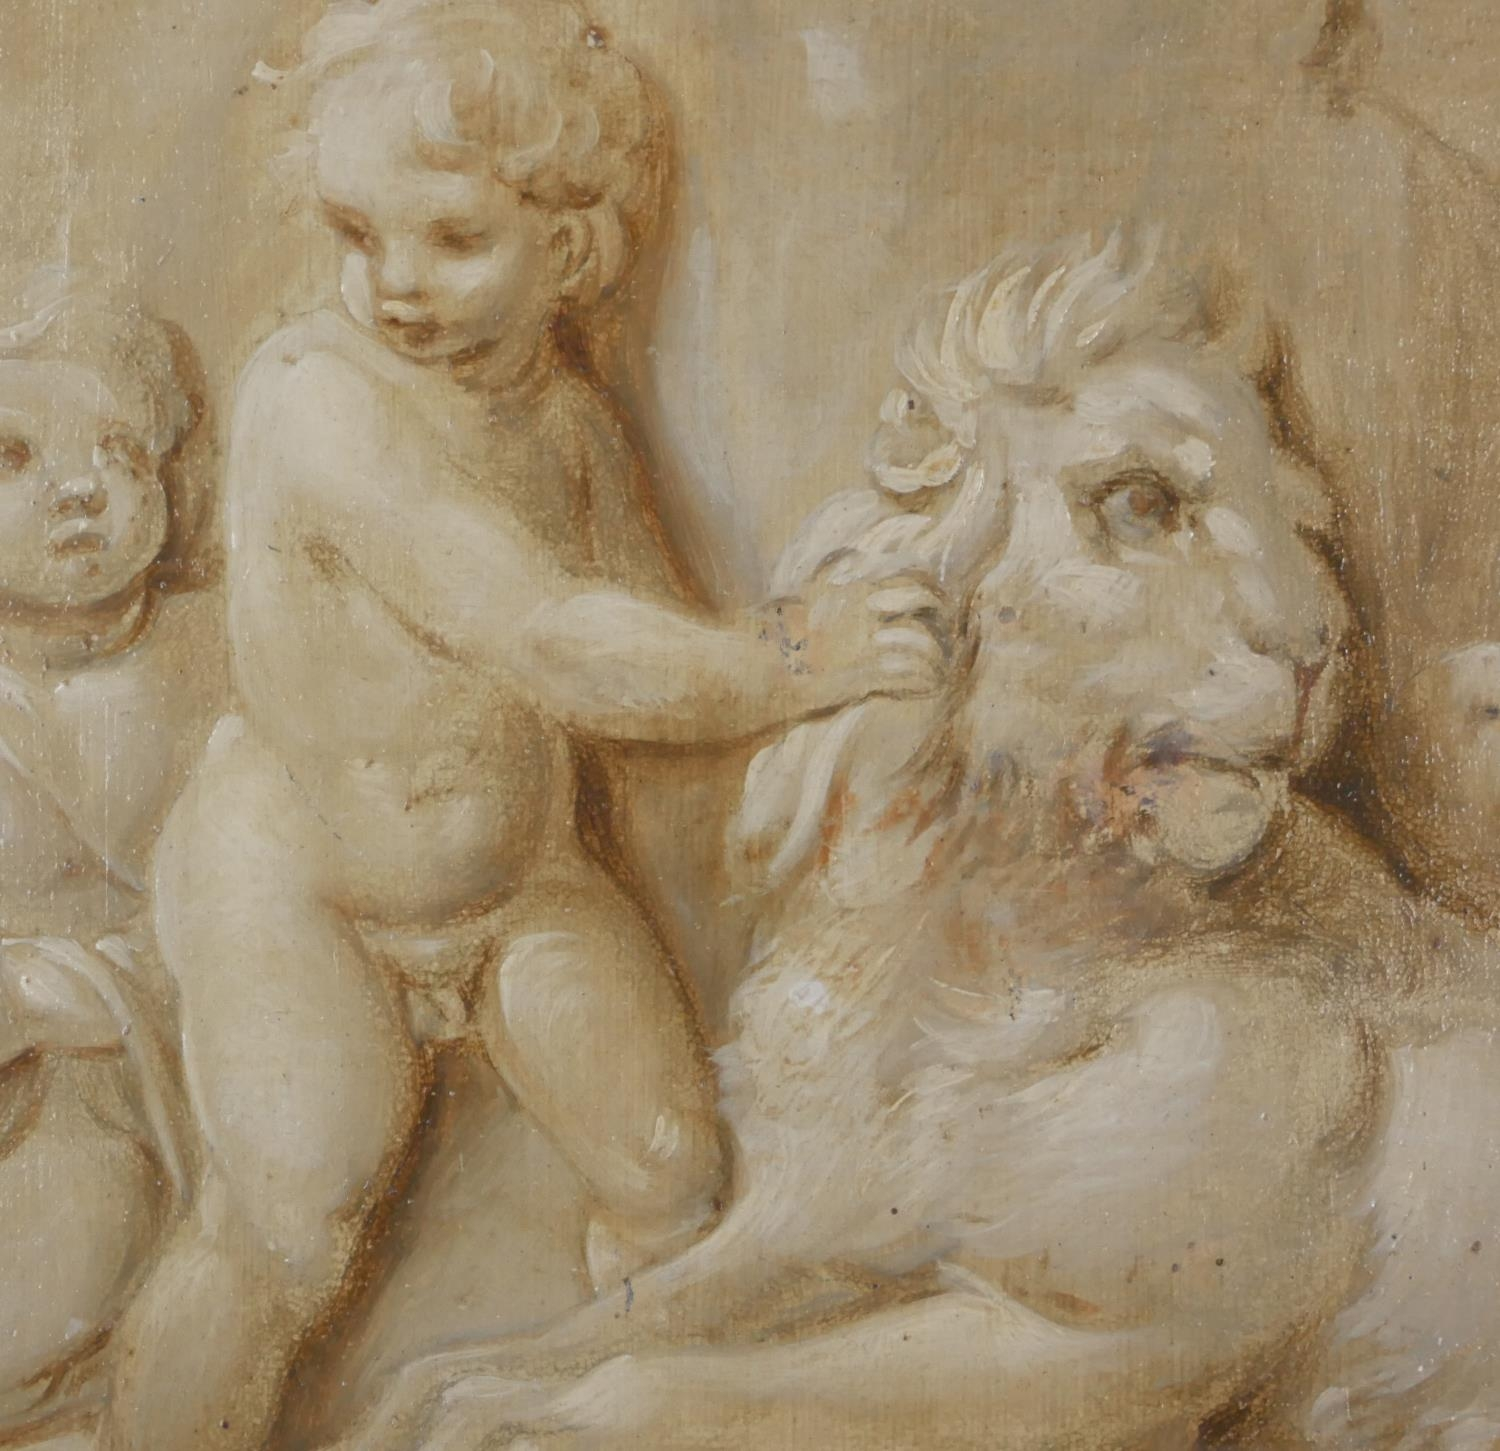 ATTRIBUTED TO JACOB DE WIT, AMSTERDAM, 1695 - 1754, A PAIR OF 18TH CENTURY OILS ON PANEL Putti - Image 6 of 9